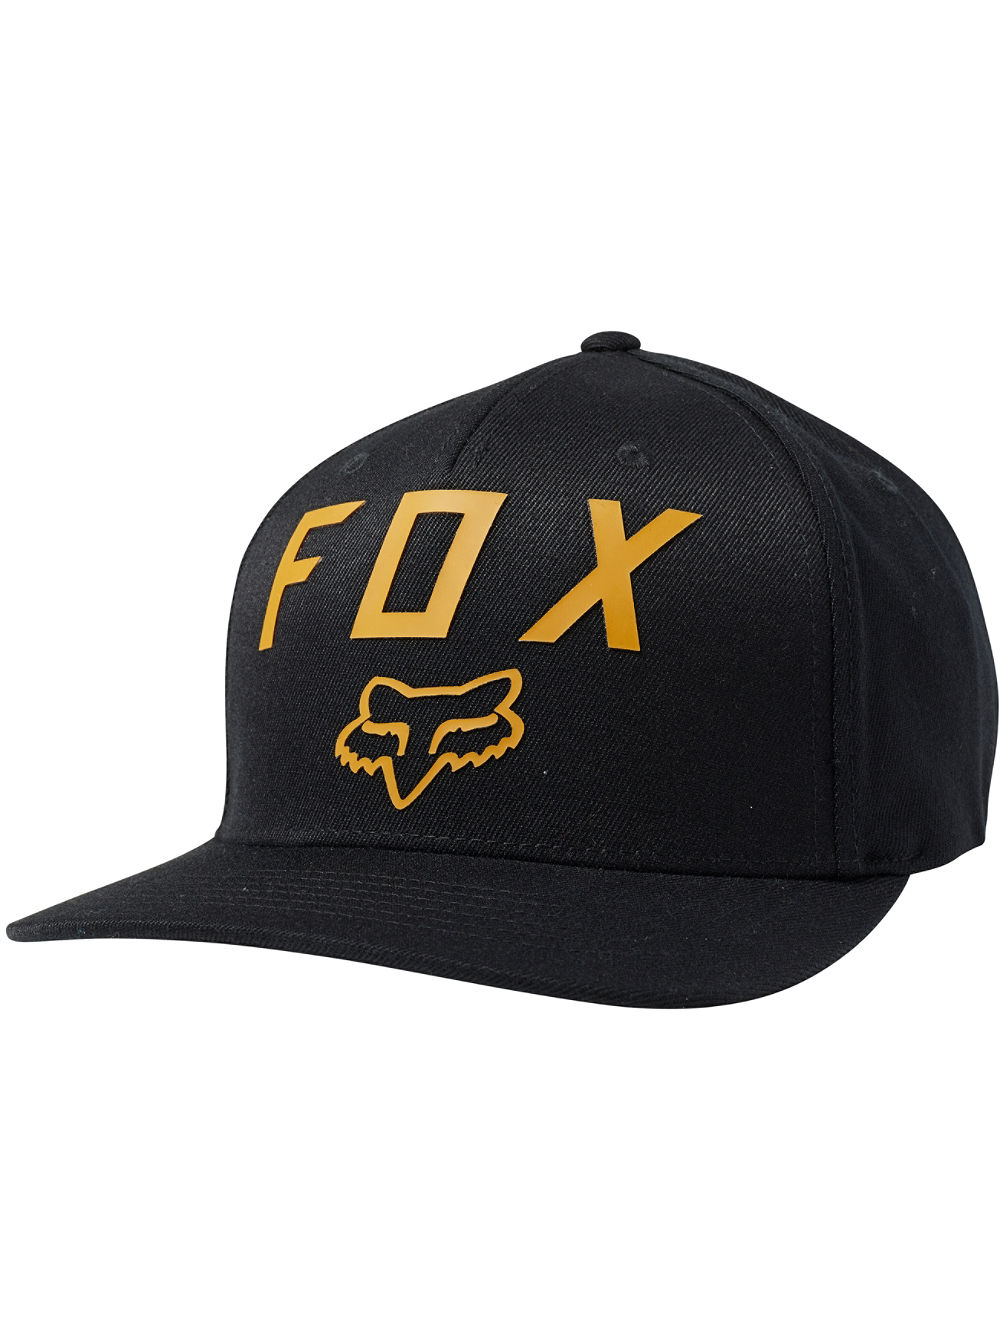 Number 2 Flexfit Cap